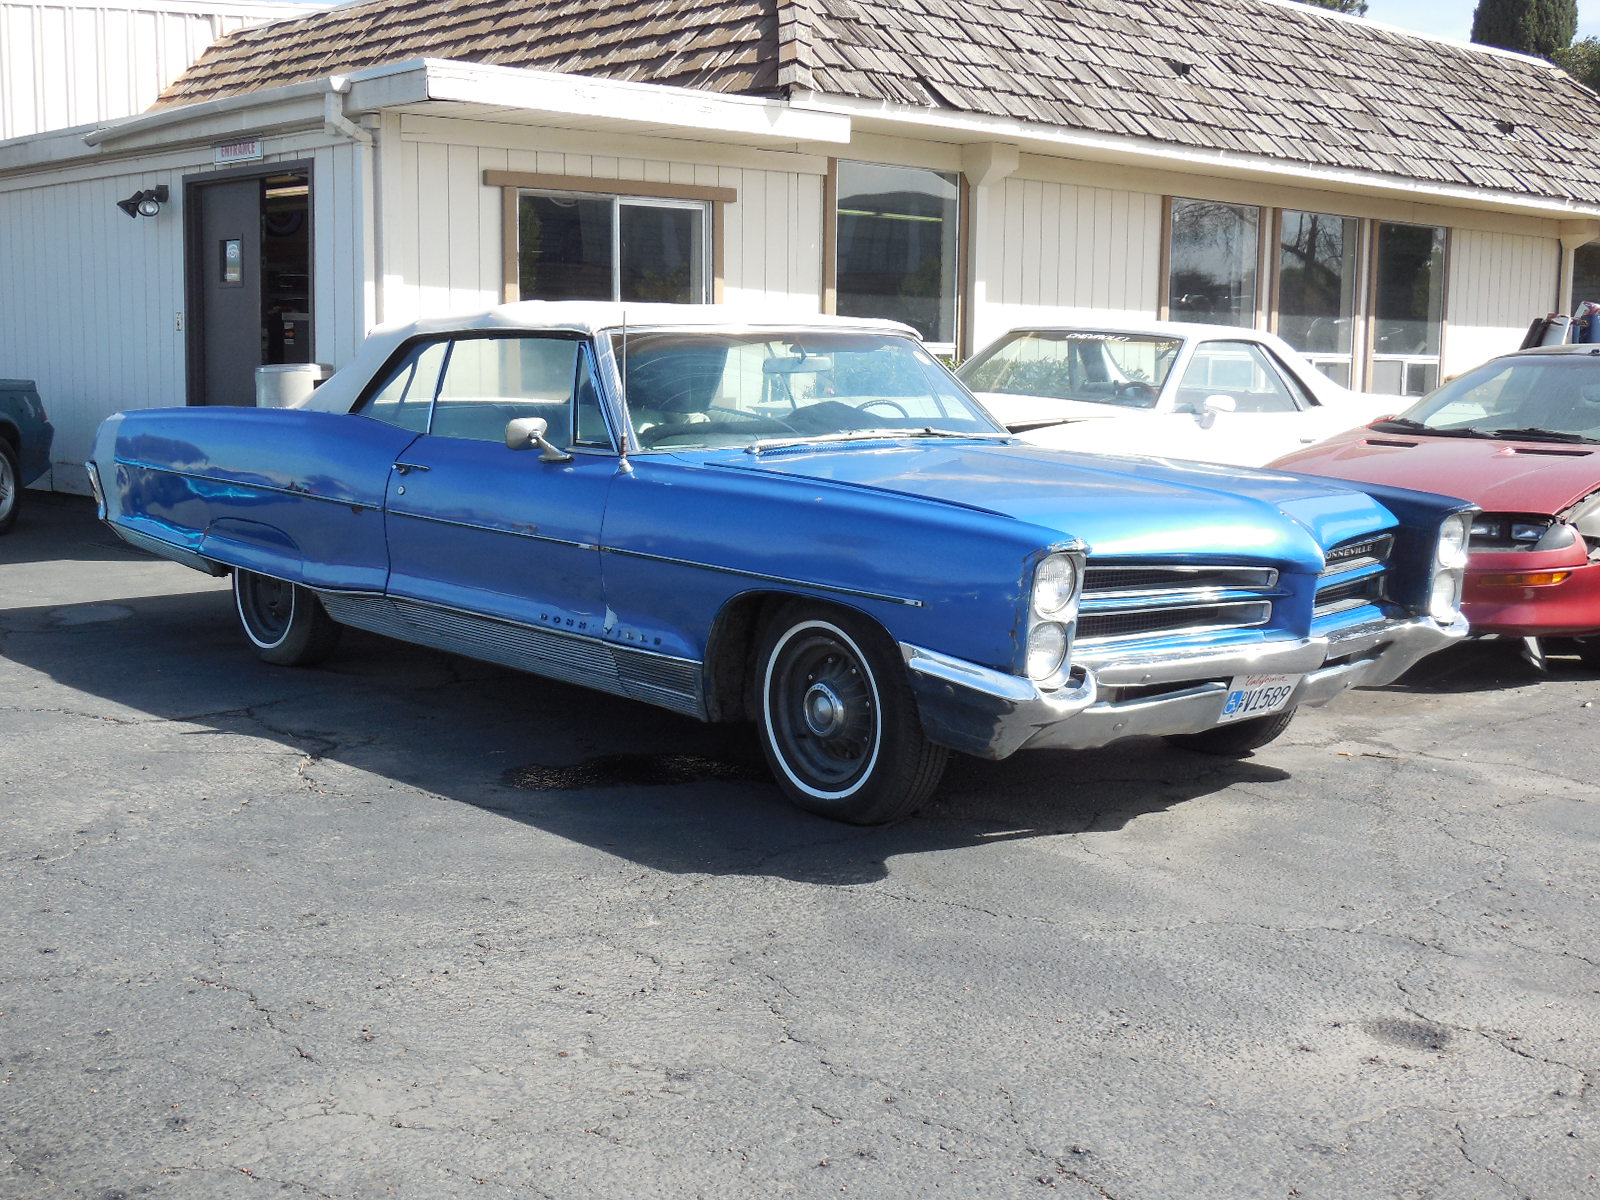 1966 Chevy Impala Convertible Project